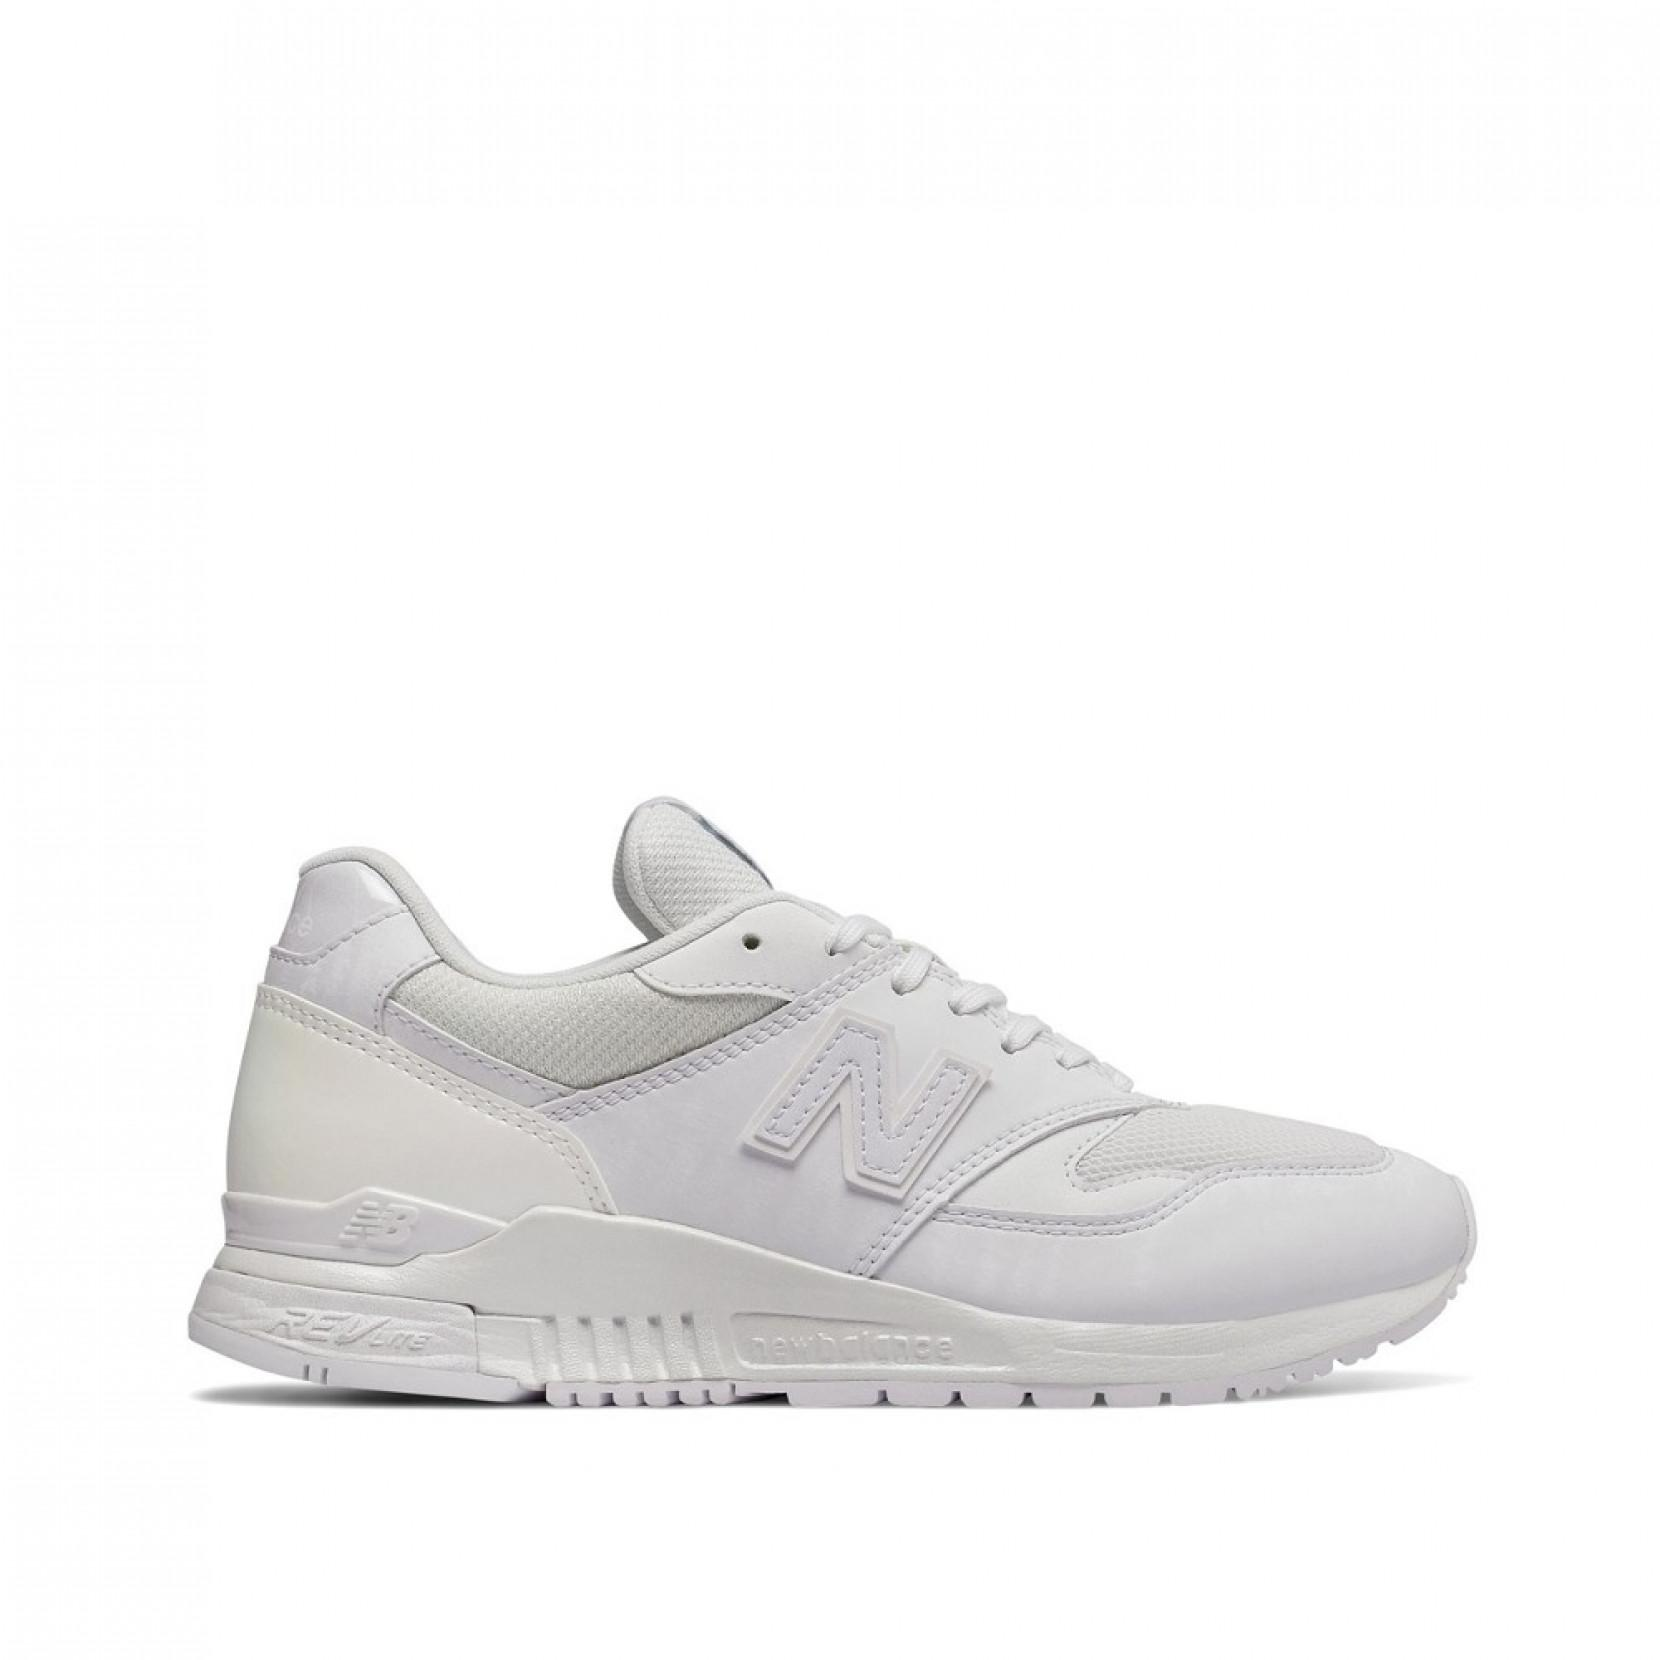 New Balance Wl 840 Pw in White for Men - Lyst